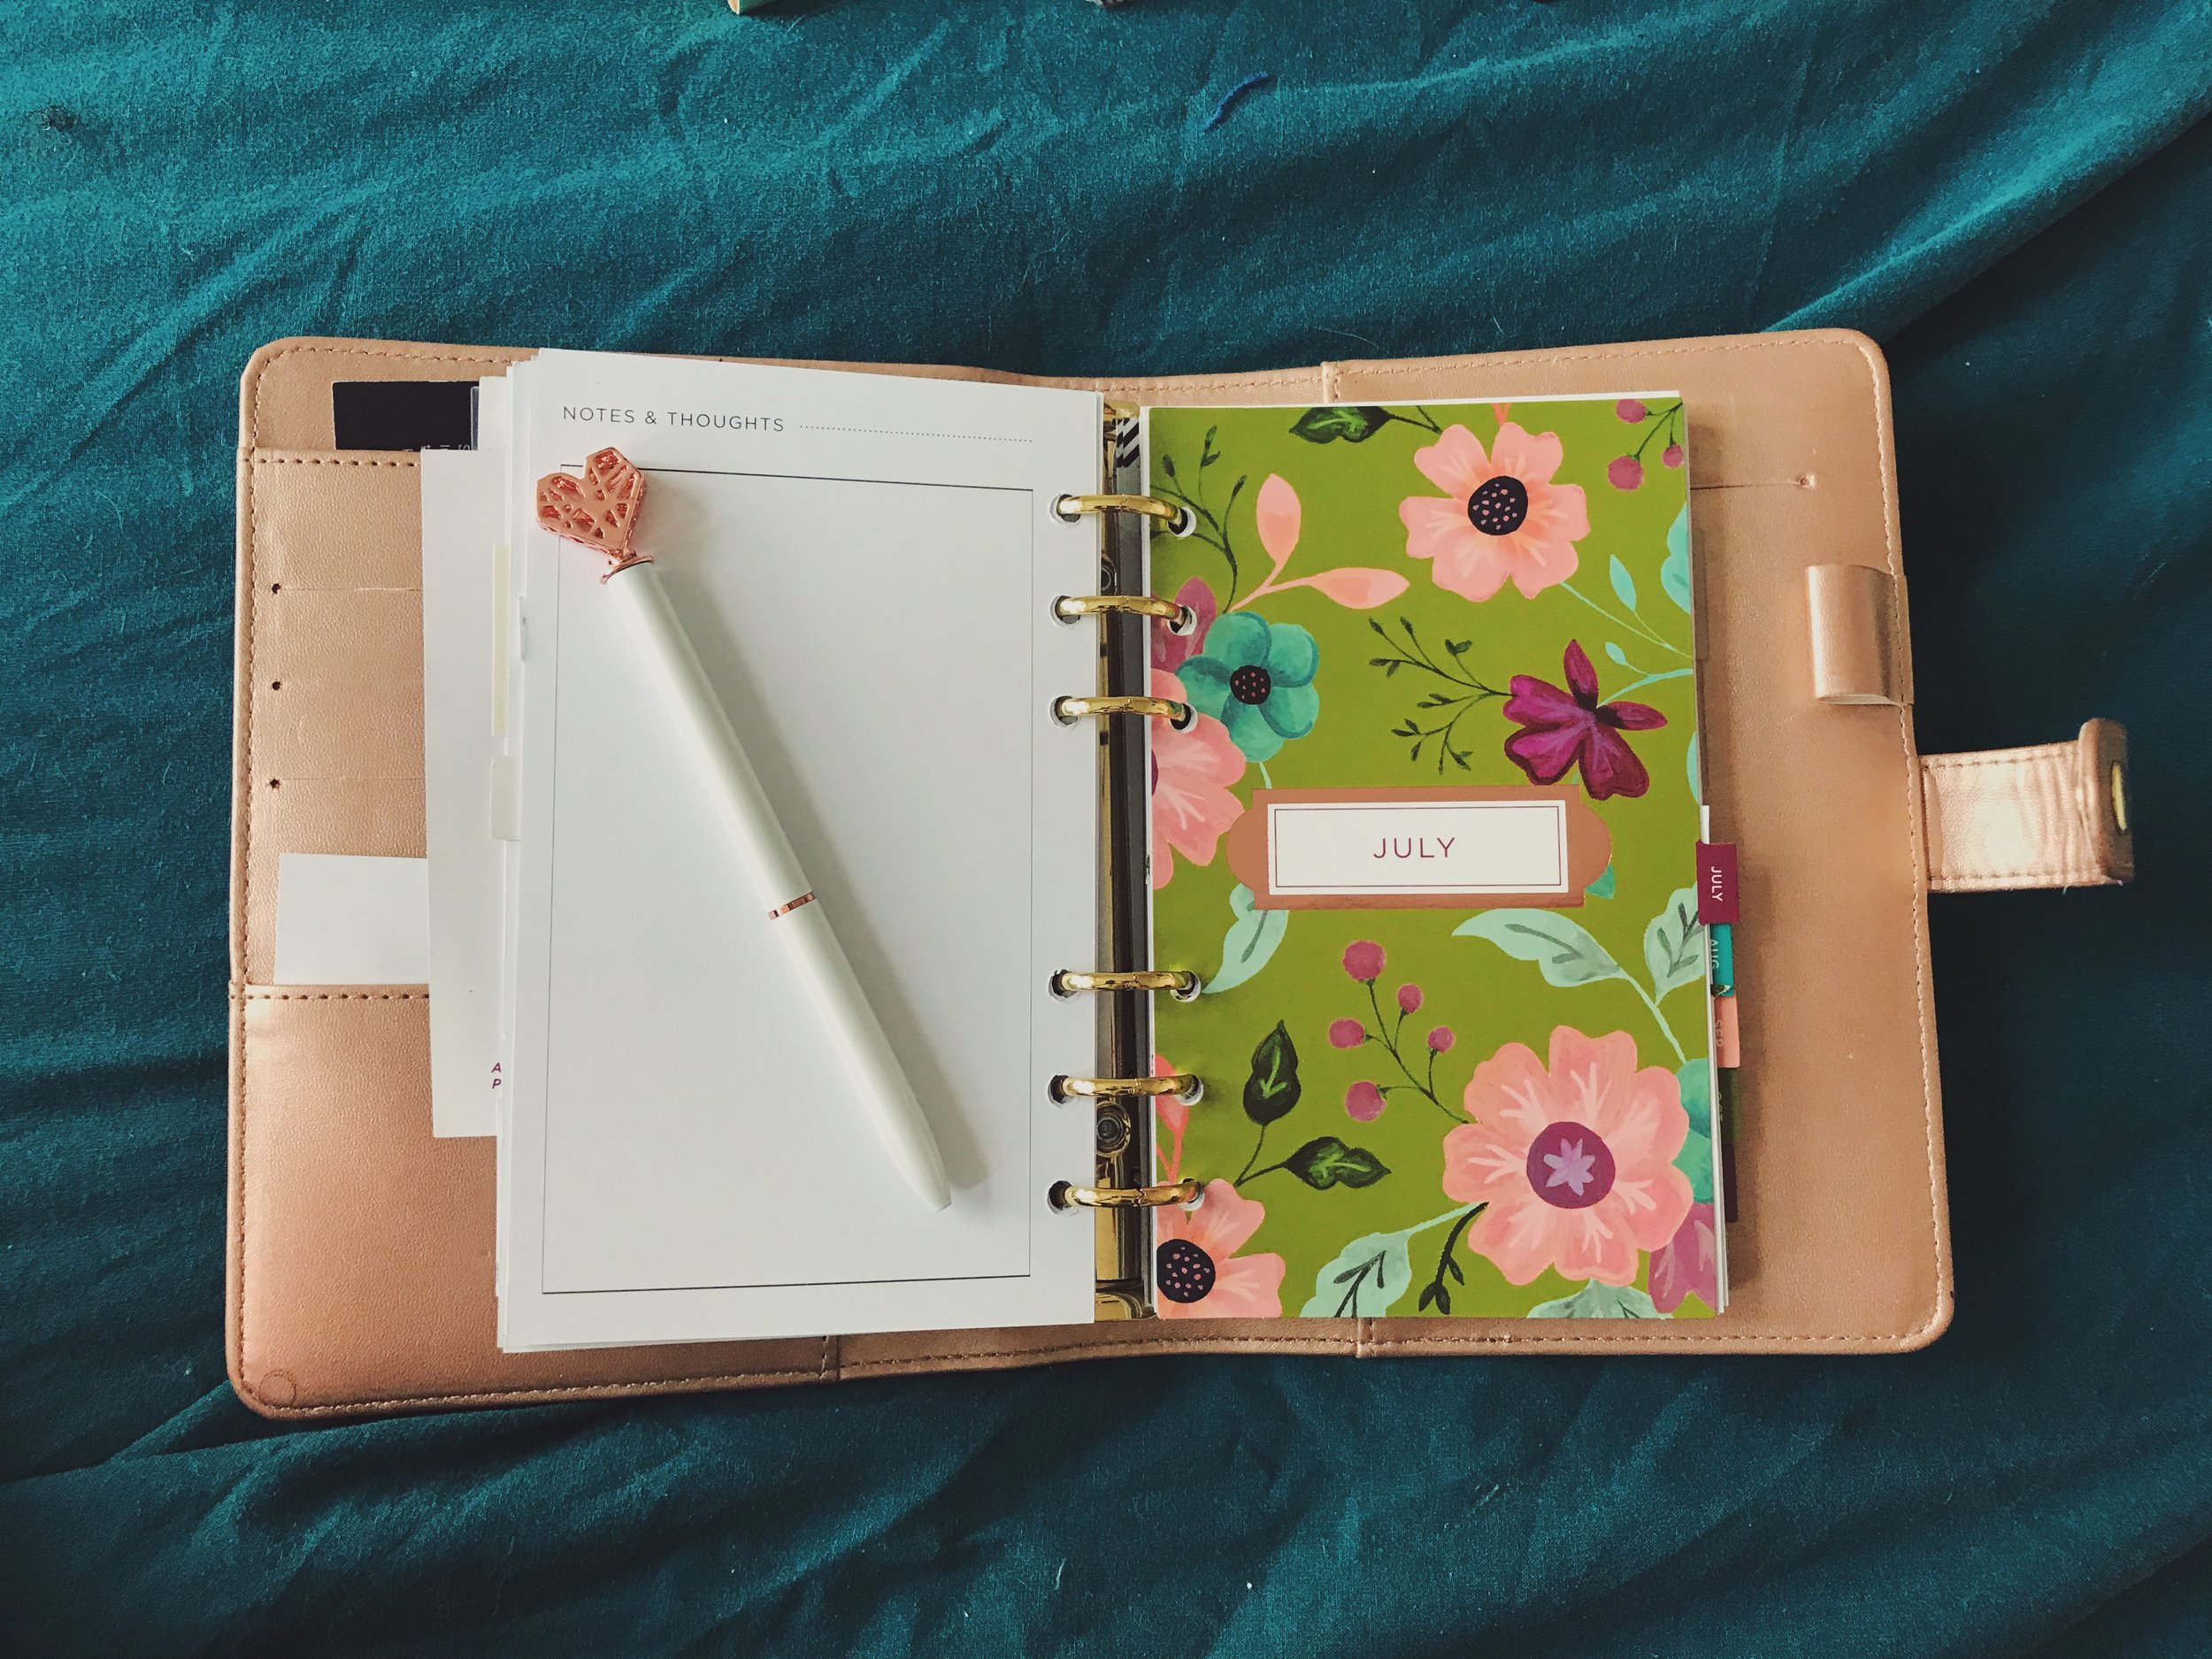 Planner binder from Michael's with customizable inserts.